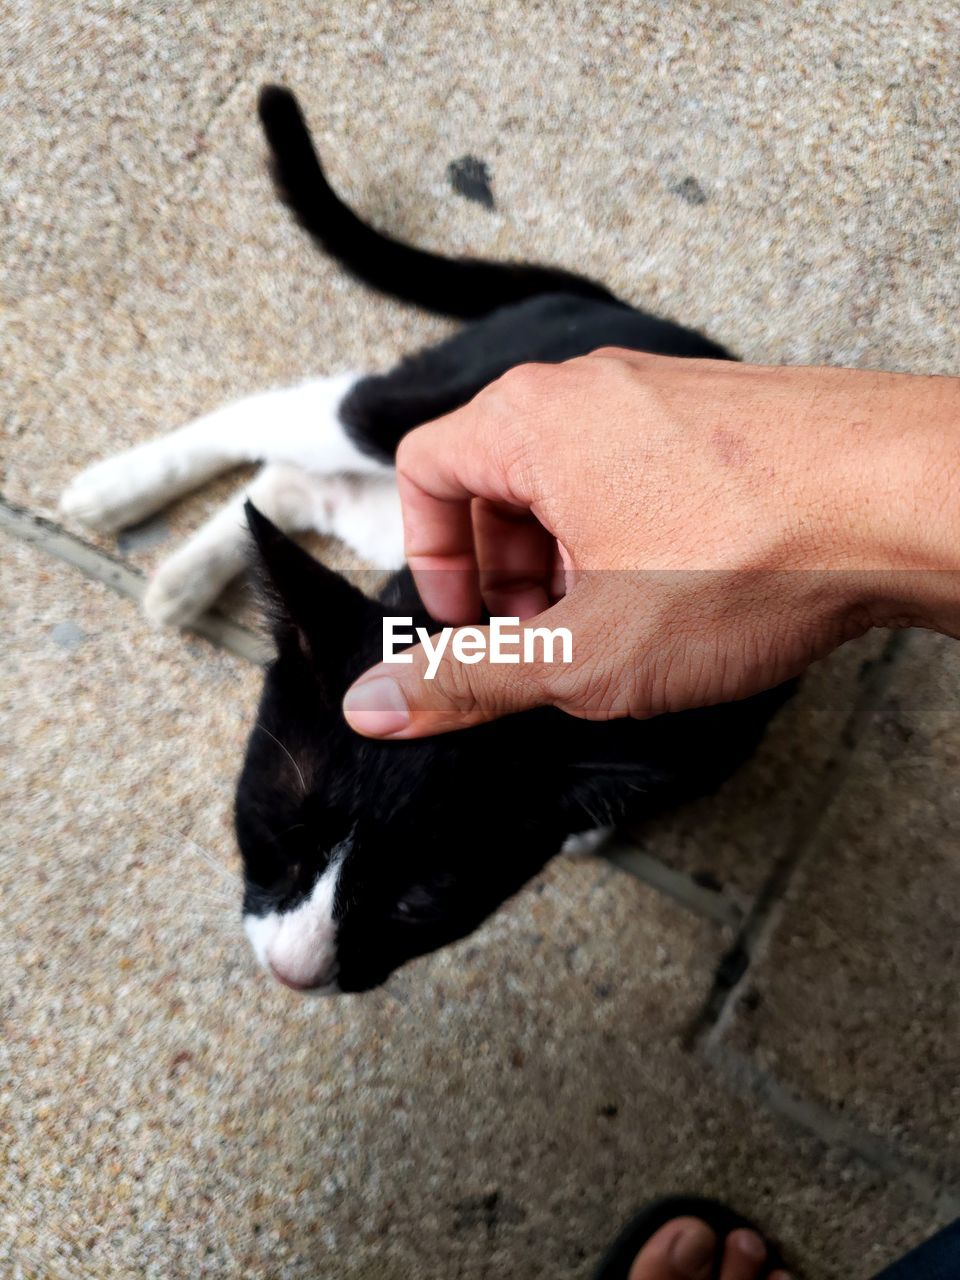 mammal, one animal, domestic, domestic animals, pets, high angle view, human hand, vertebrate, hand, real people, people, human body part, black color, day, animal body part, feline, domestic cat, pet owner, finger